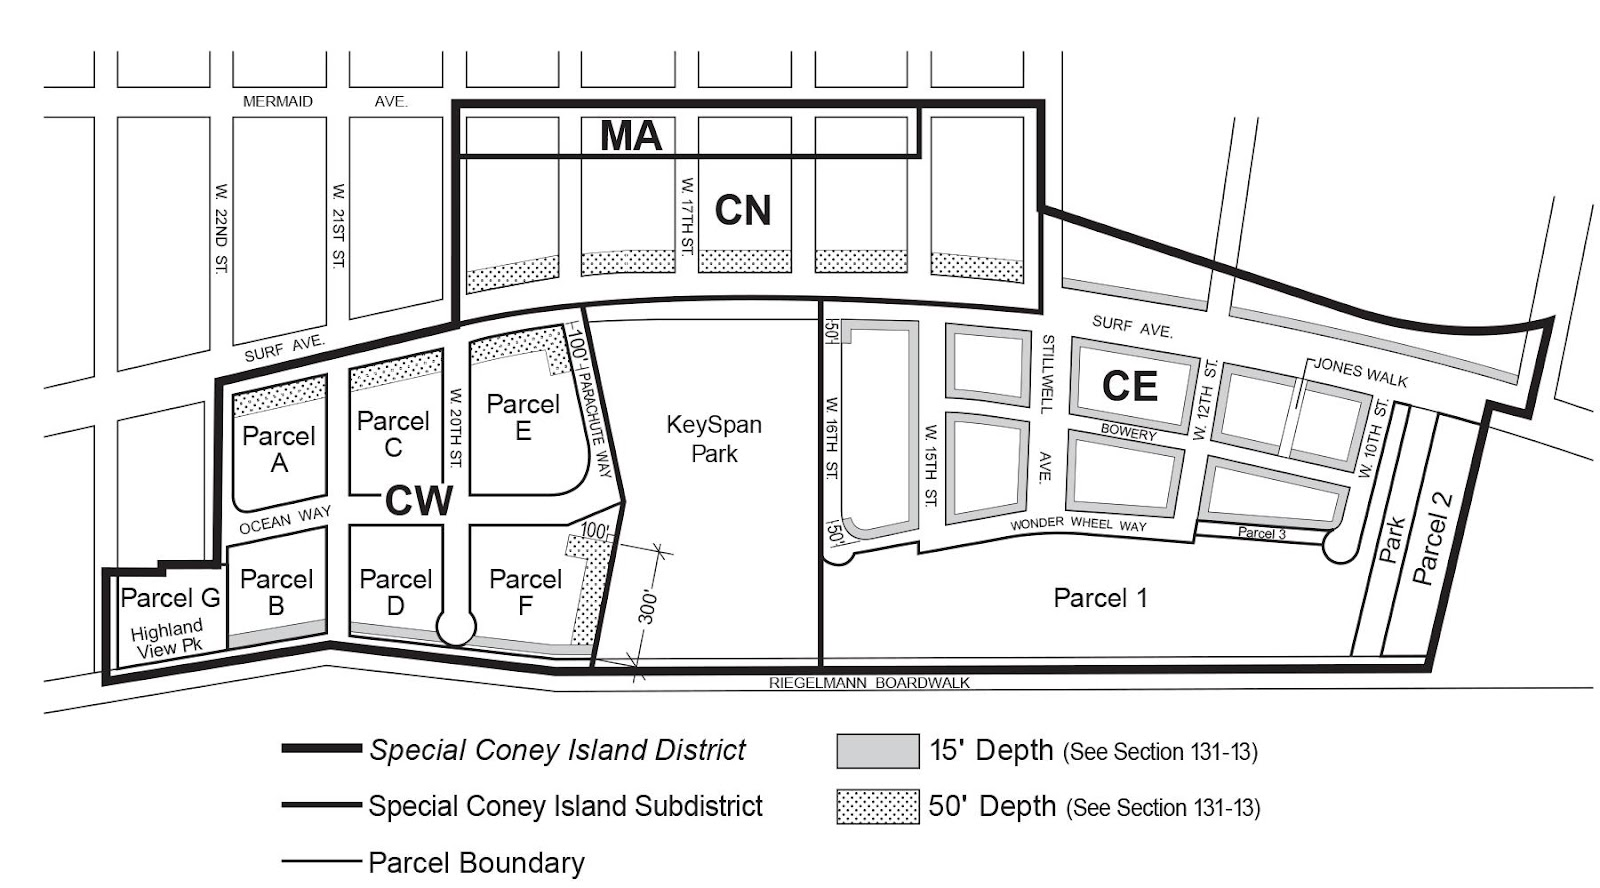 Zoning Resolutions Chapter 1: Special Coney Island District Appendix A.1